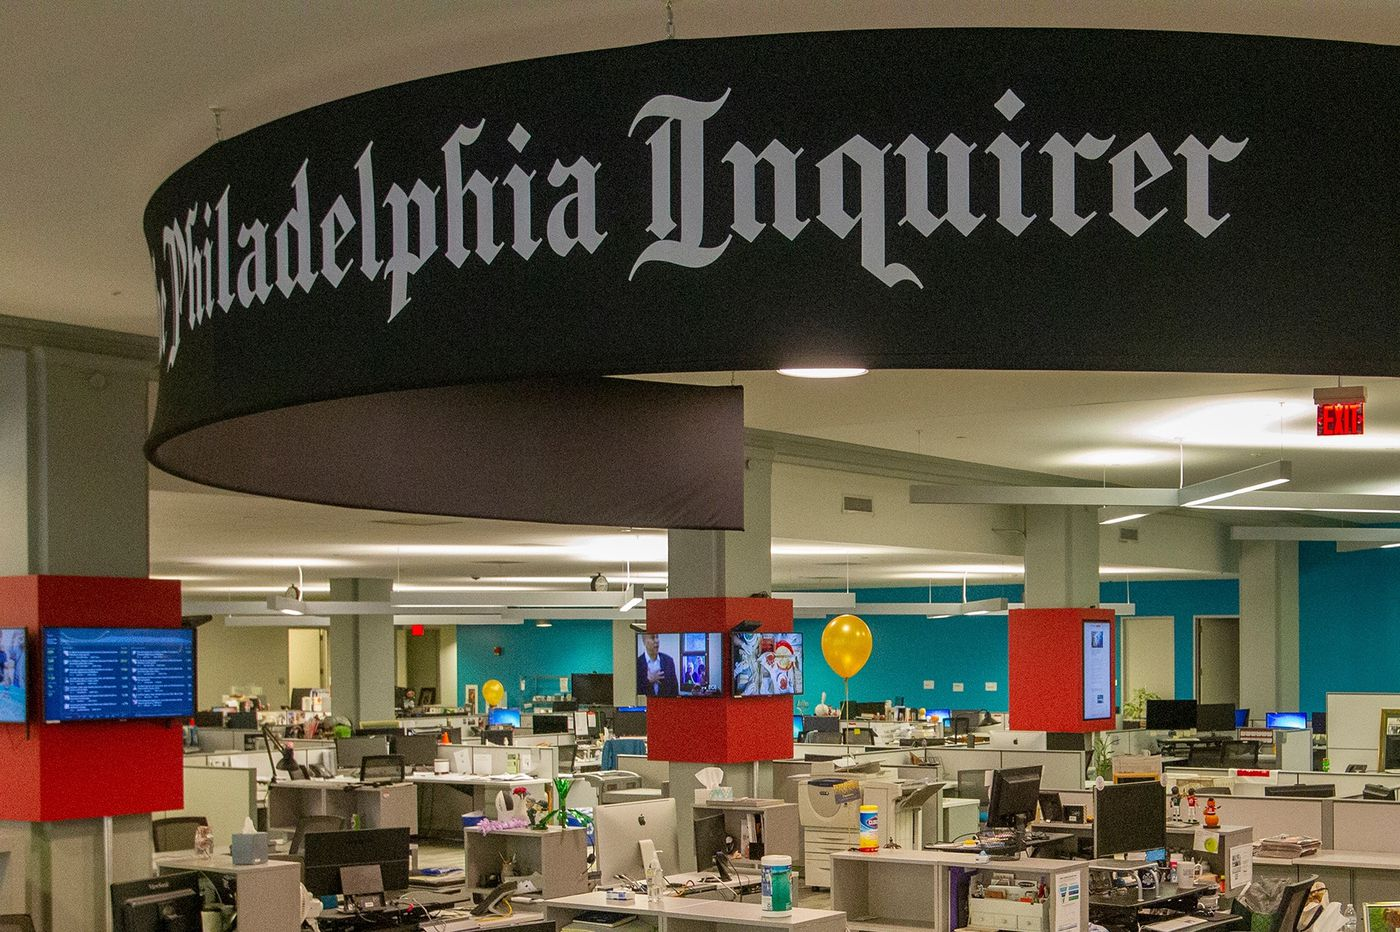 Inquirer staffers who called out 'sick and tired' voiced what a lot of us have been thinking | Jenice Armstrong